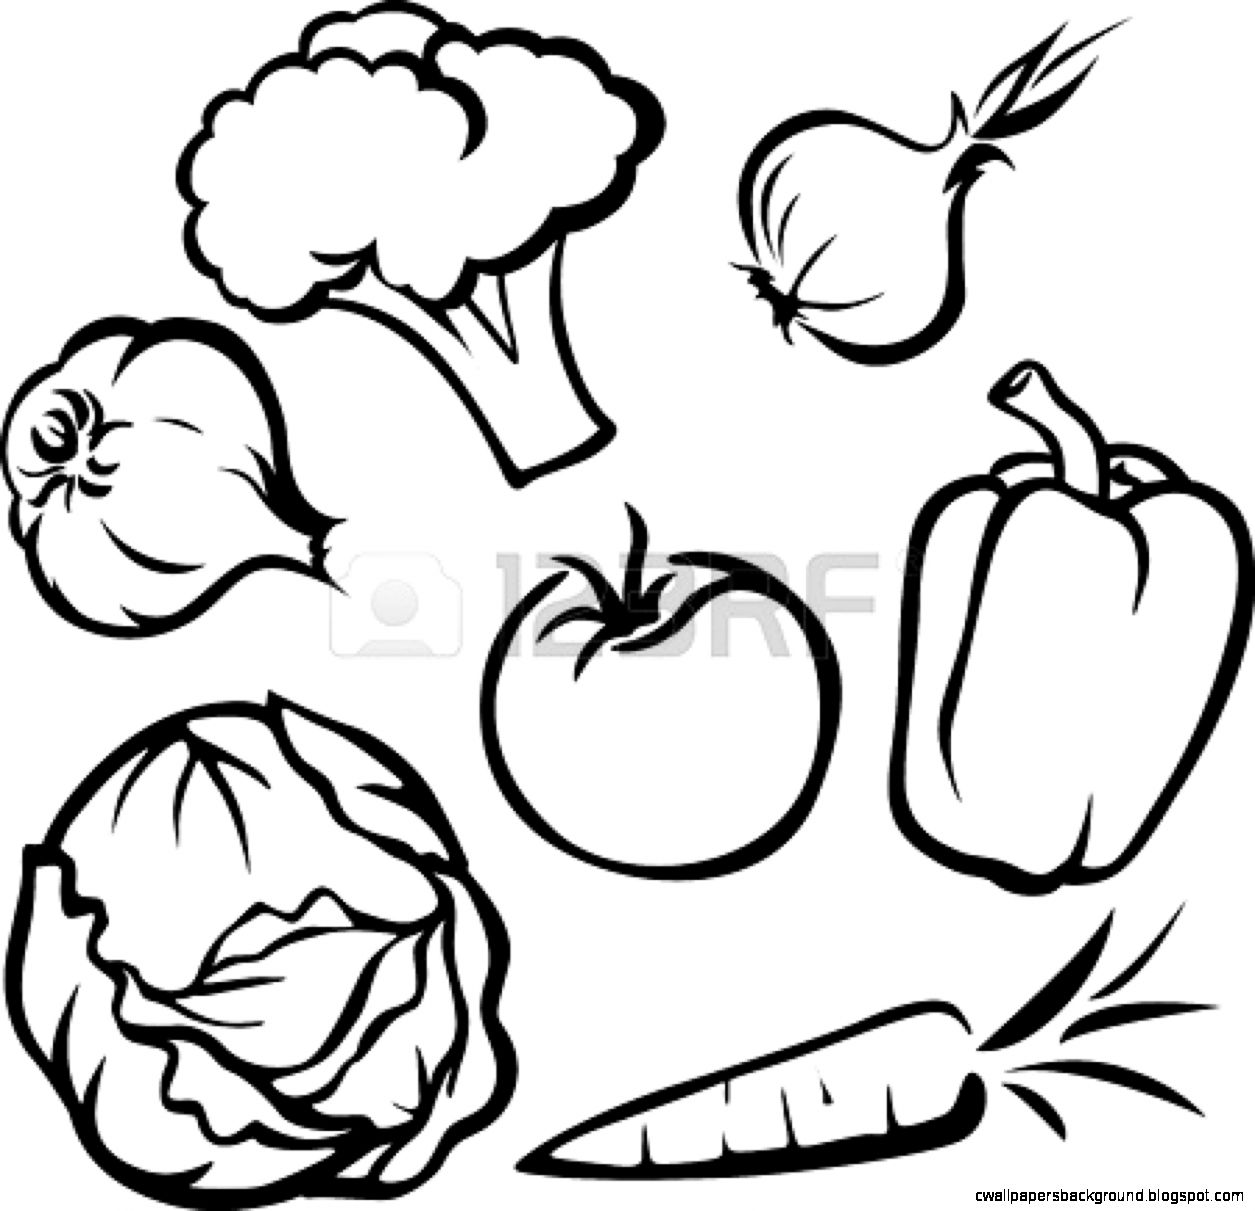 1255x1211 Vegetable Basket Clipart Black And White Wallpapers Background